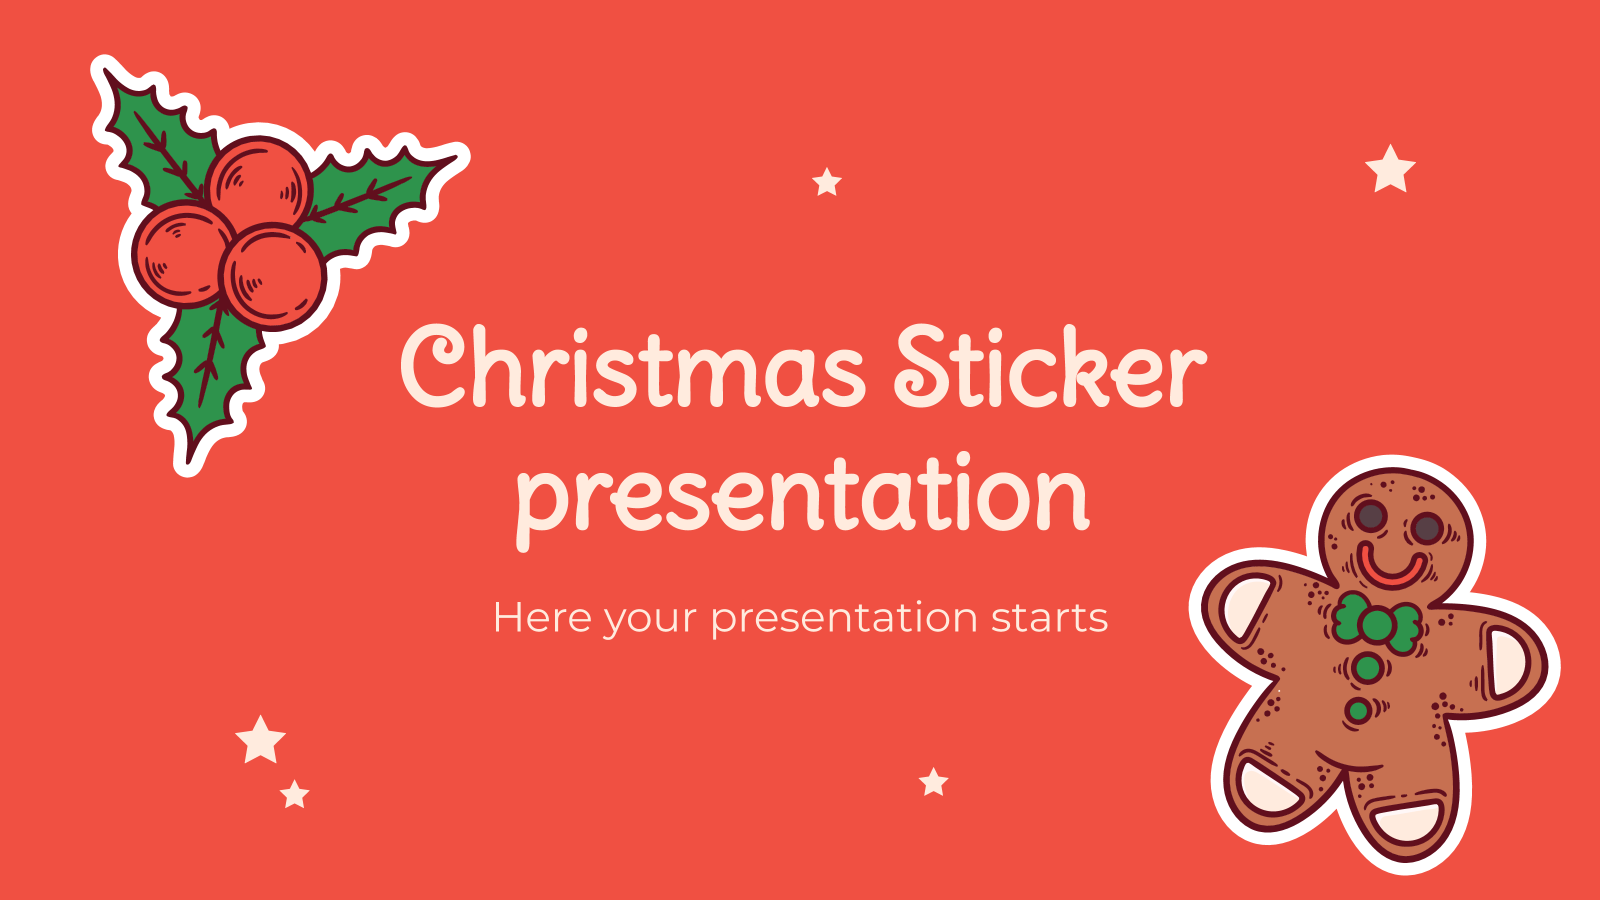 Christmas stickers presentation template